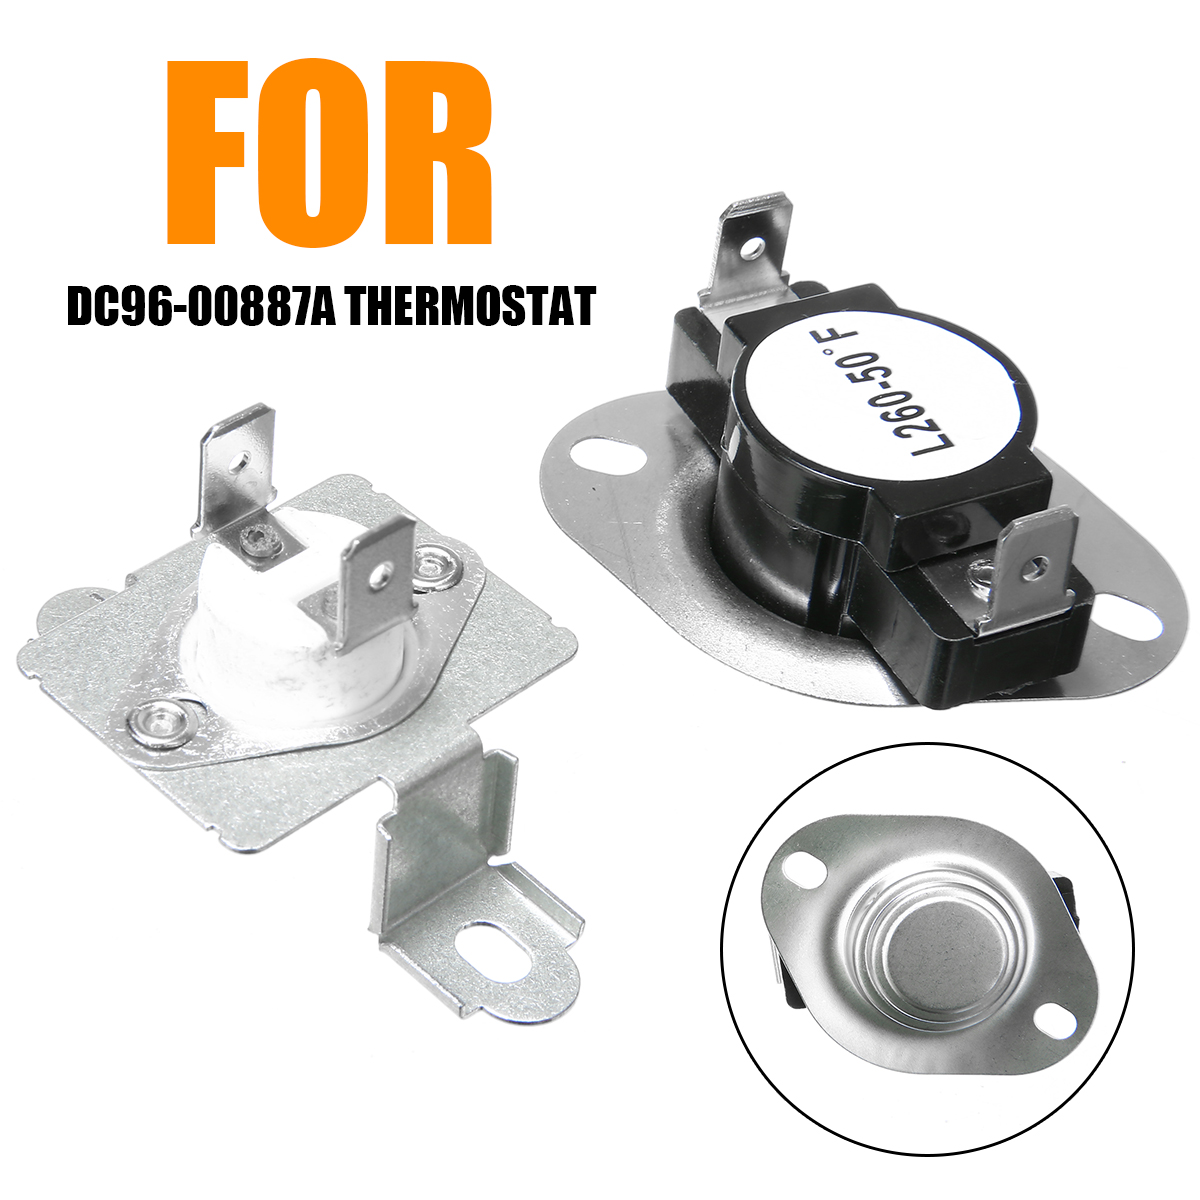 New Dryer Thermostat Kit DC47-00018A  DC96-00887A Dryer Thermal Fuse Thermostat Replacement For Washing Machine Dryer